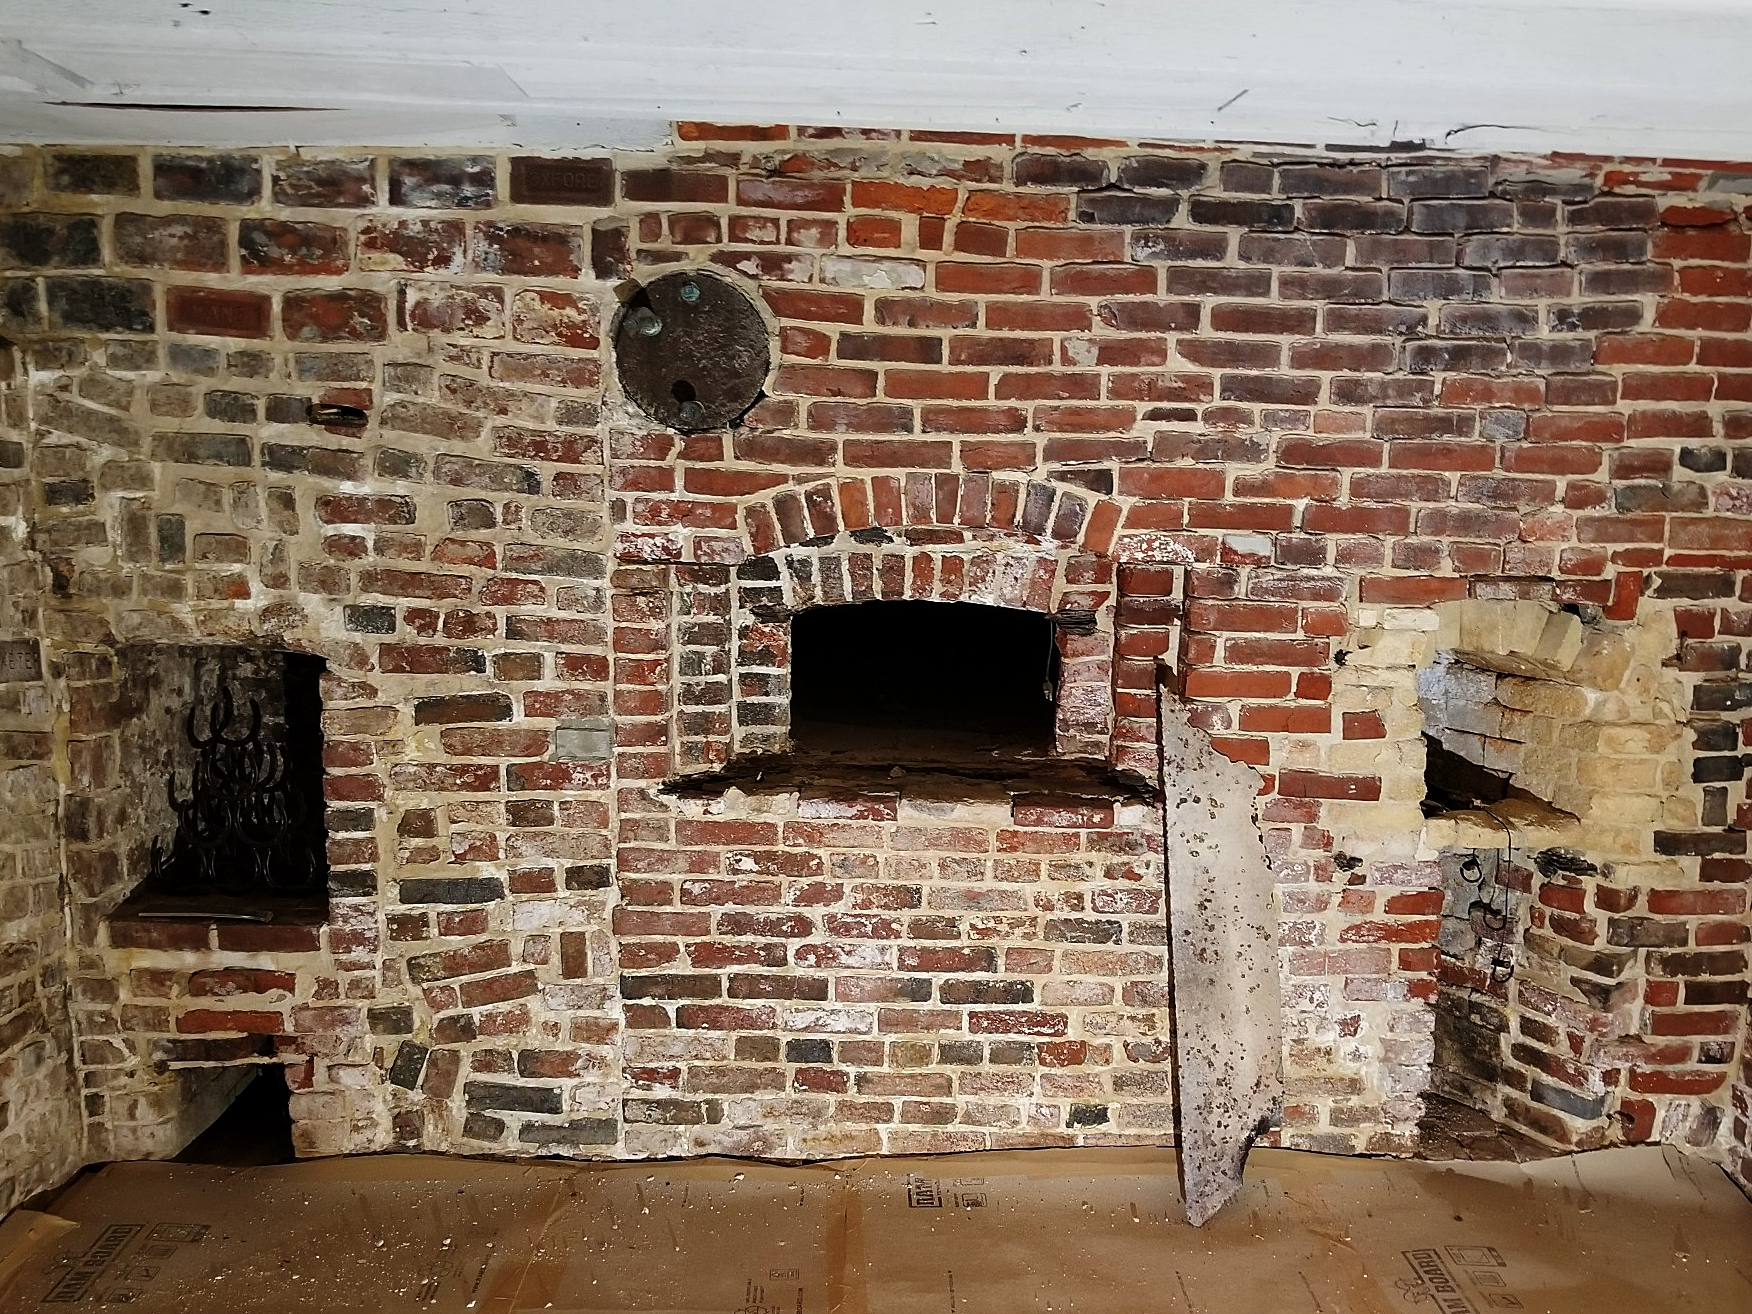 A masonry oven in on Philly's Elfreth's Alley, dating back to the 1700's.